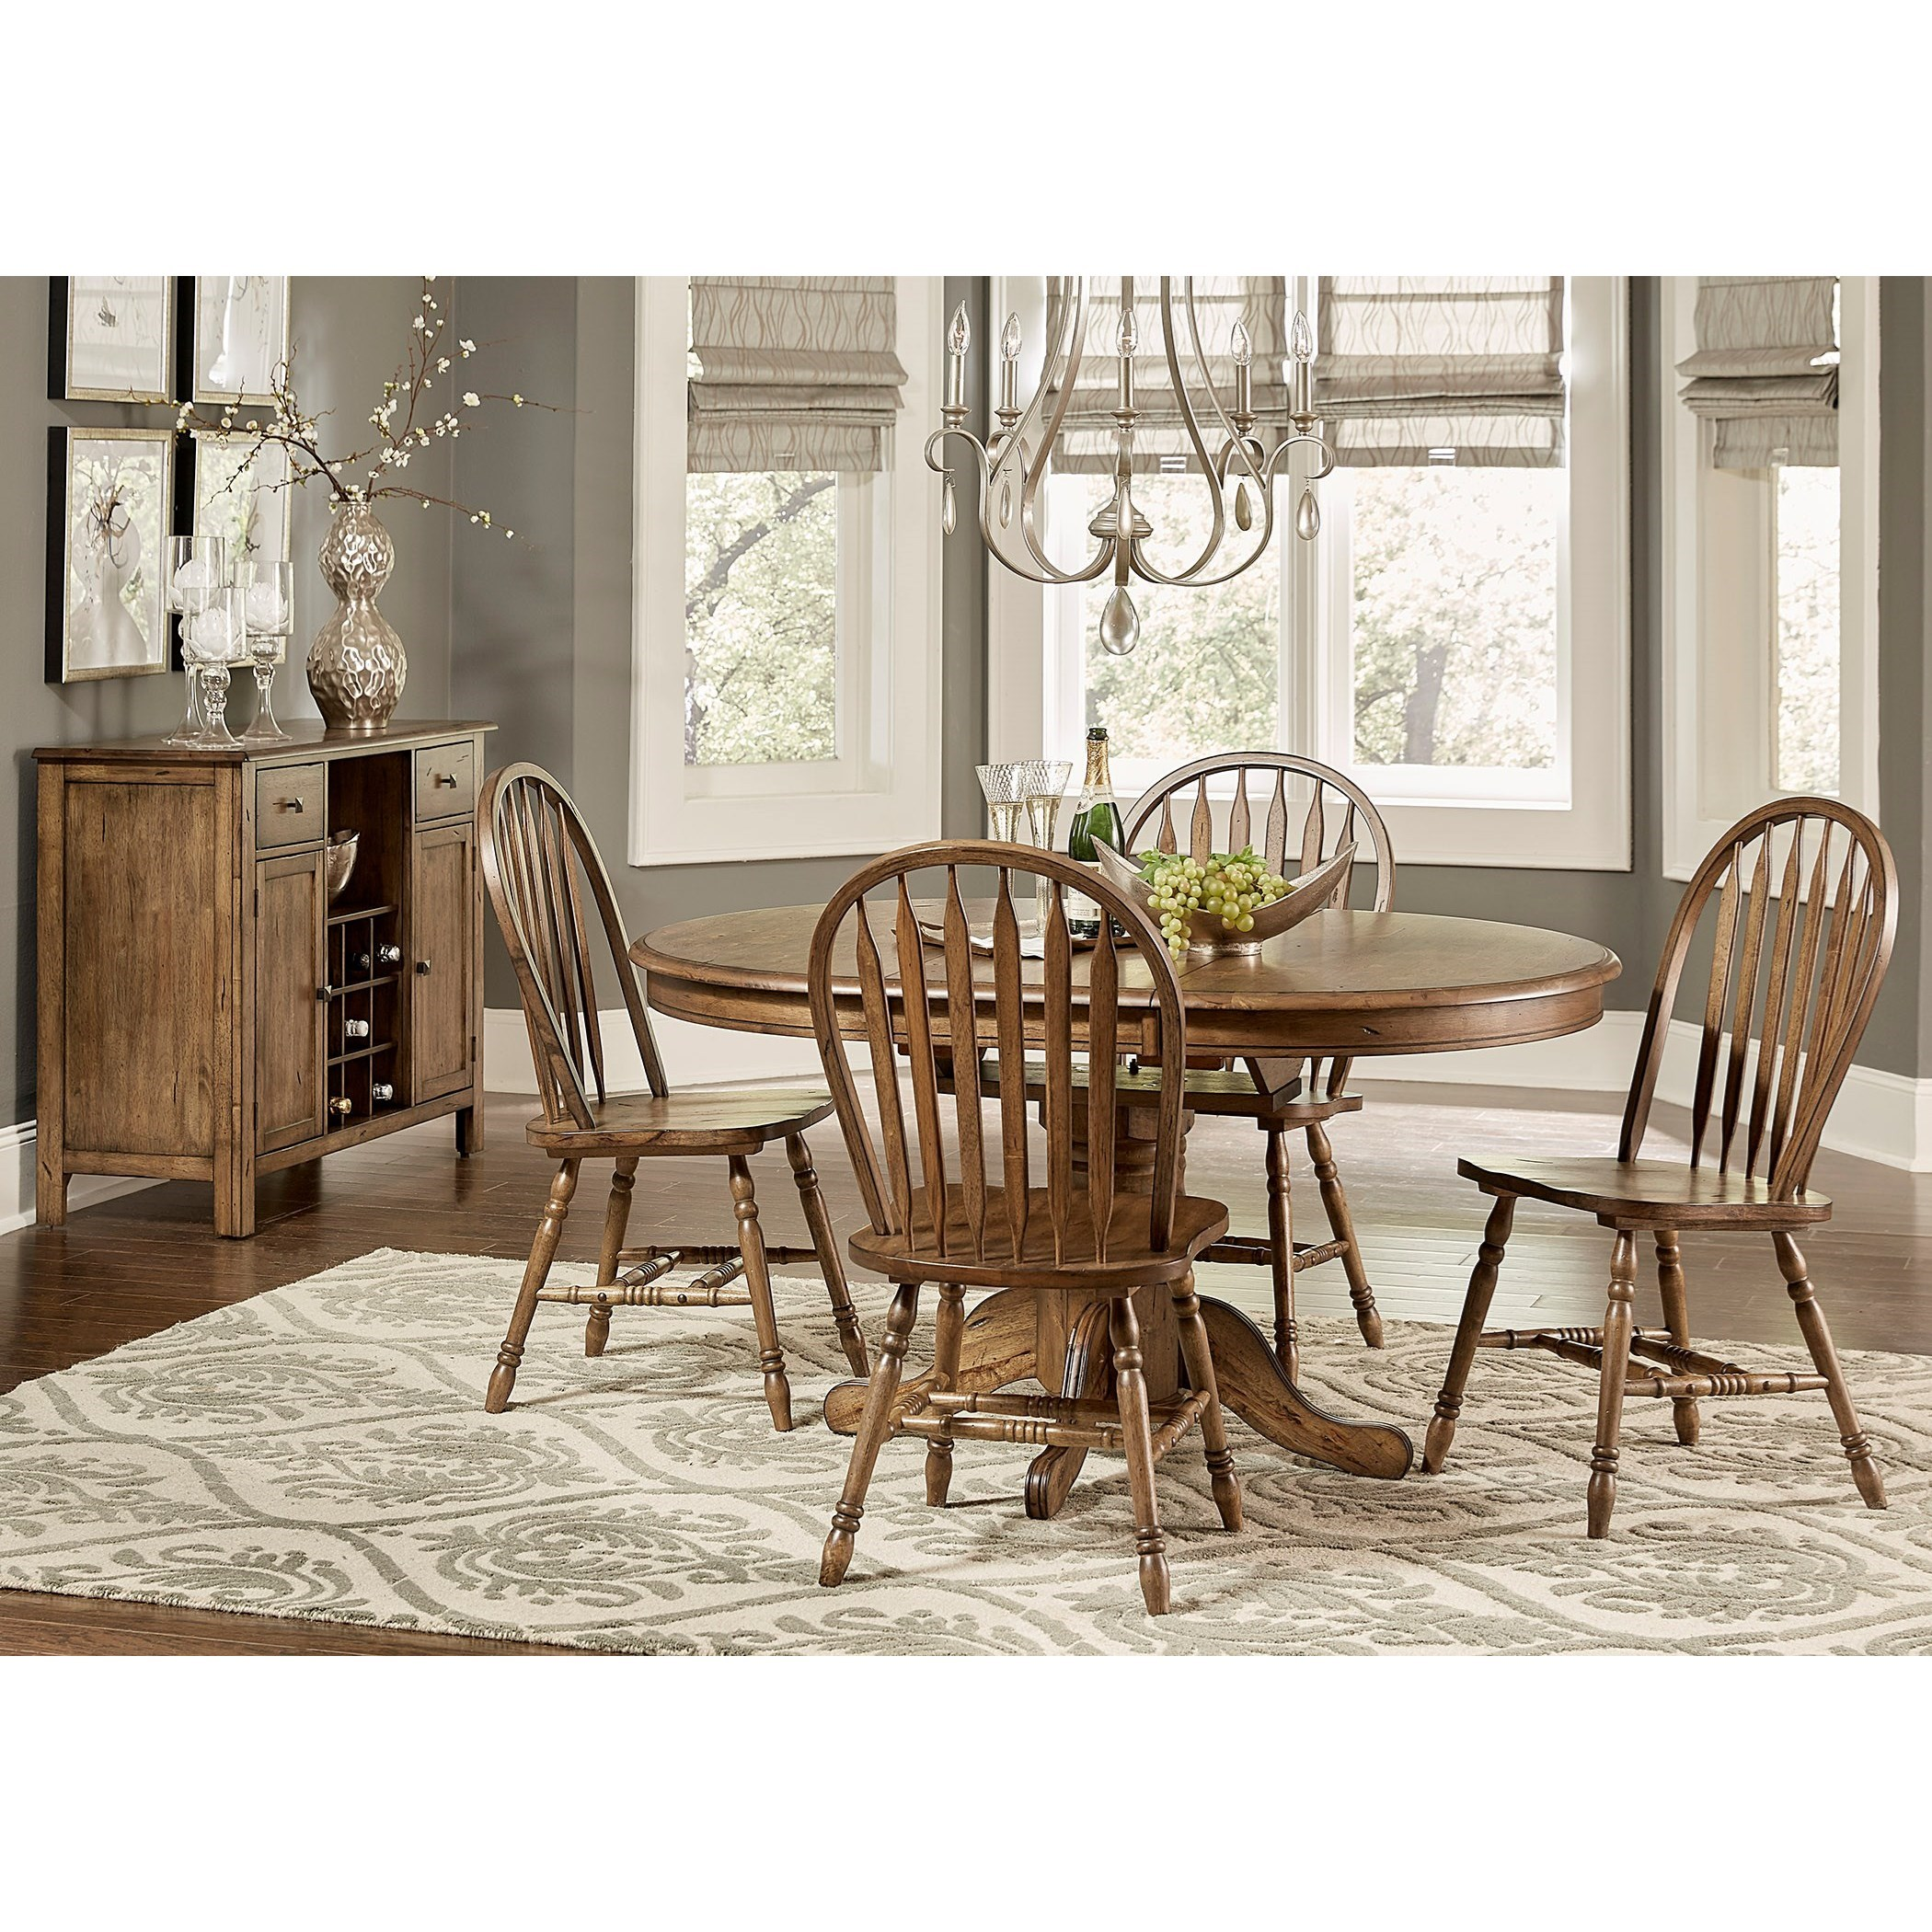 Carolina Crossing Casual Dining Room Group by Liberty Furniture at Lapeer Furniture & Mattress Center